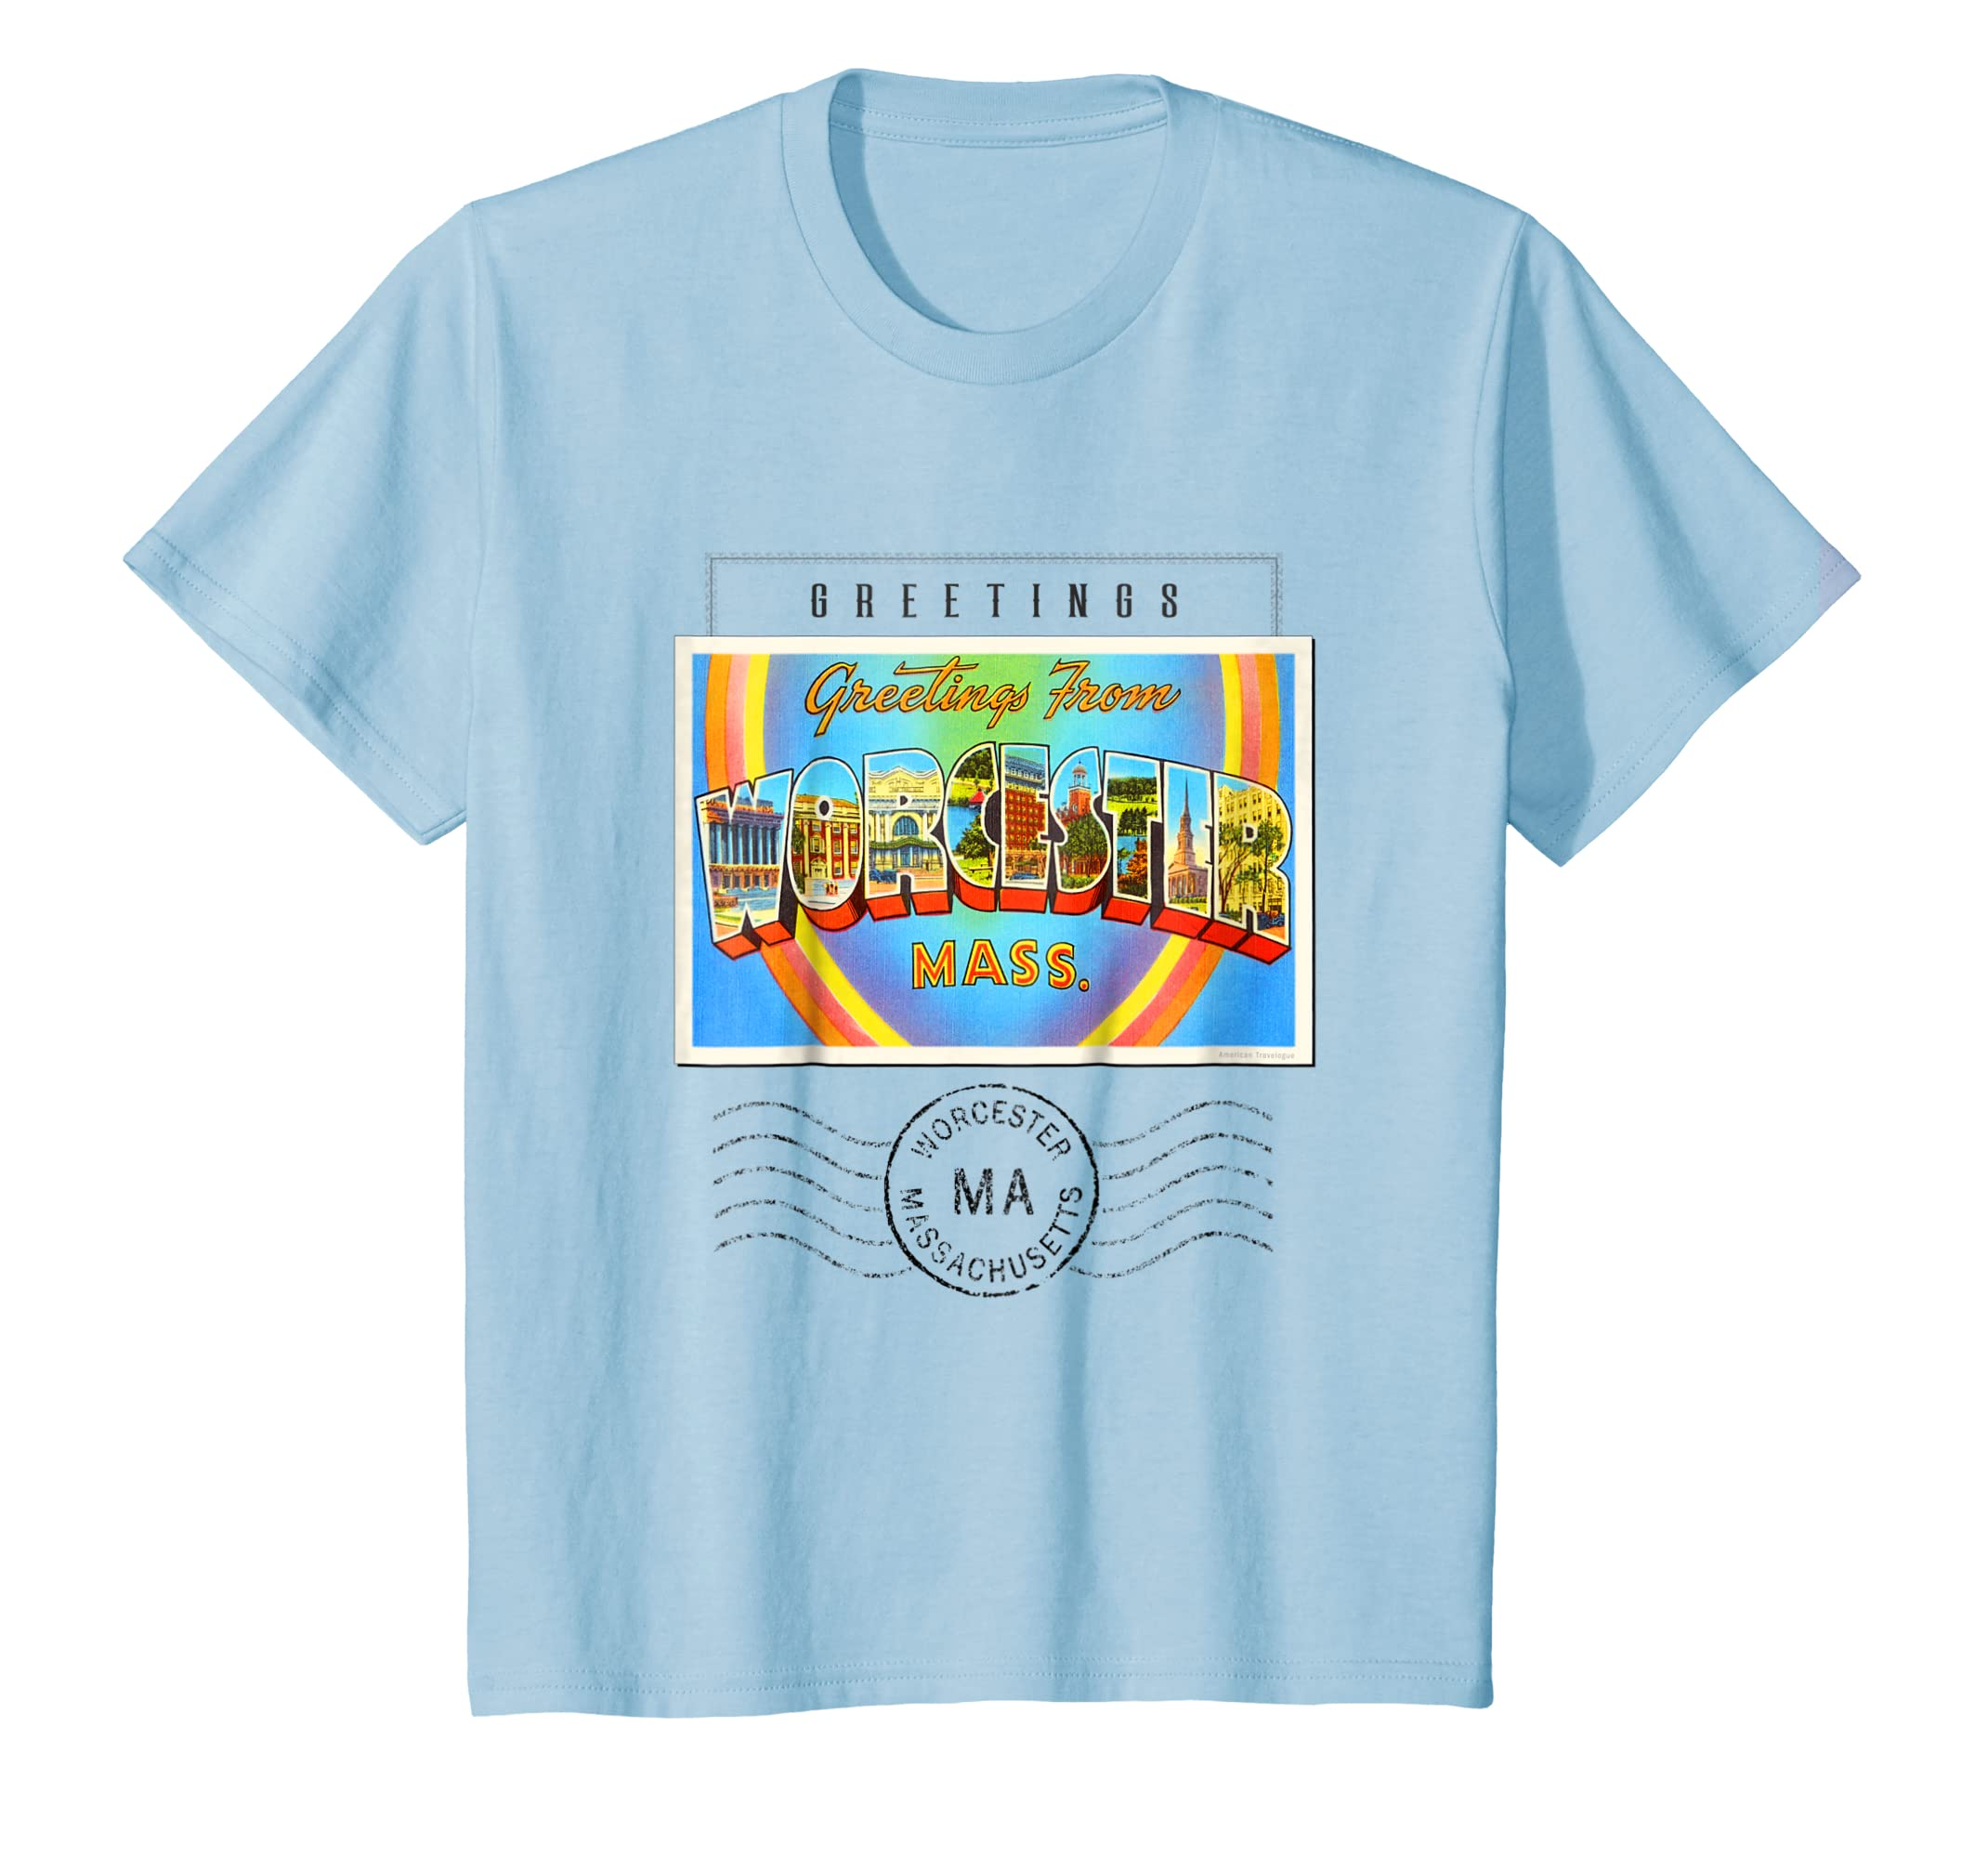 802336bbd T Shirt Printing Worcester Ma – EDGE Engineering and Consulting Limited